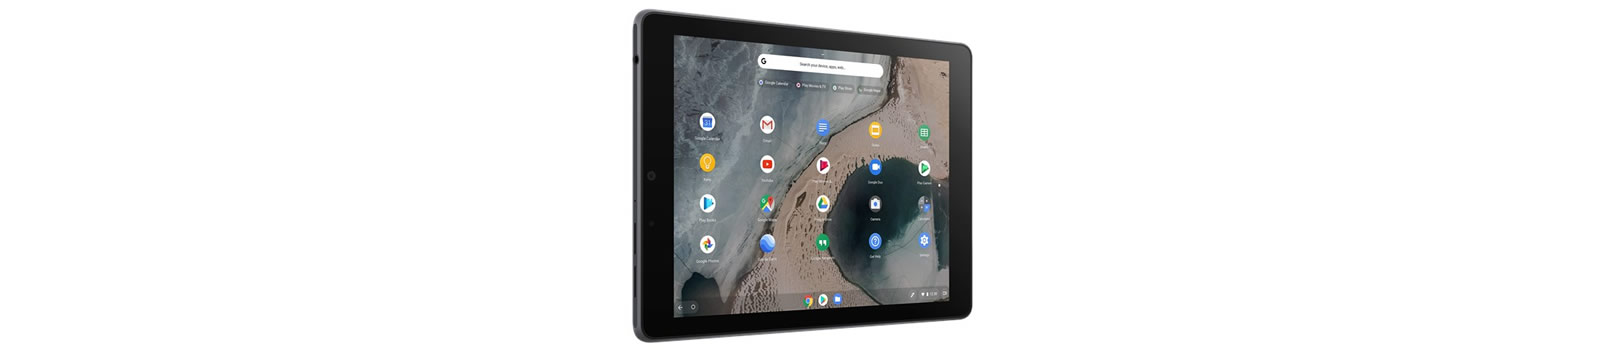 Chromebook Tablet CT100PA banner